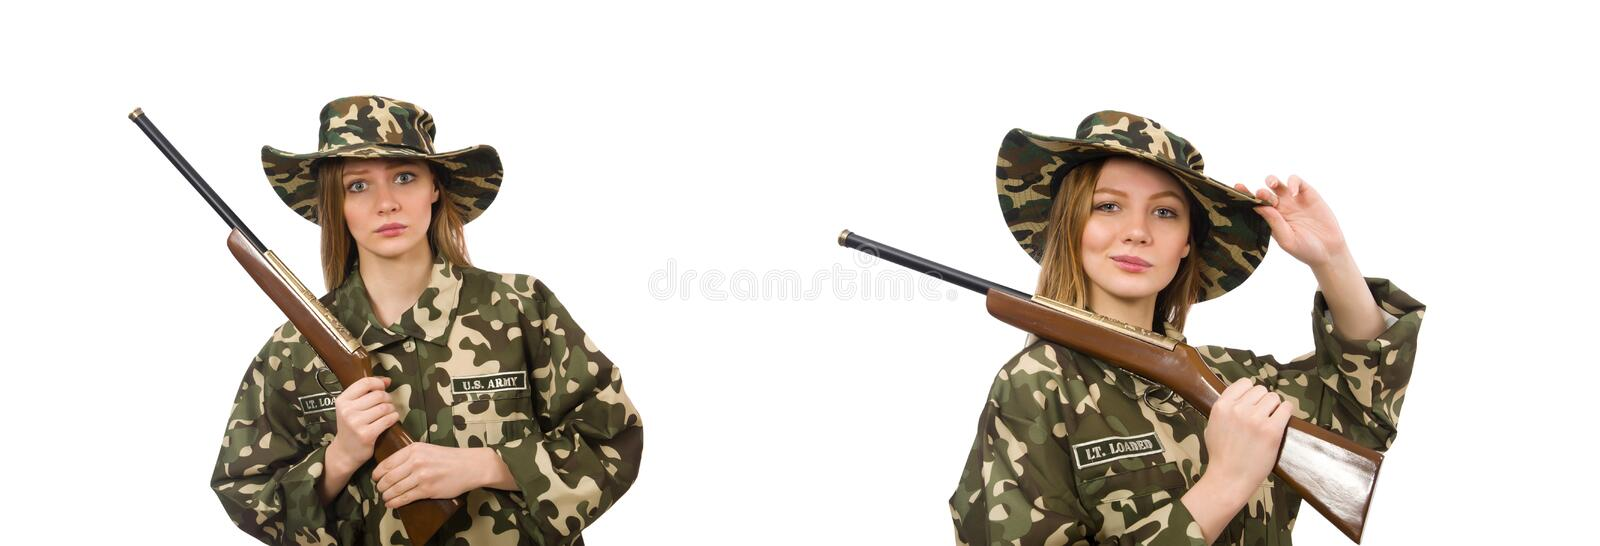 Girl in military uniform holding the gun isolated on white stock photos